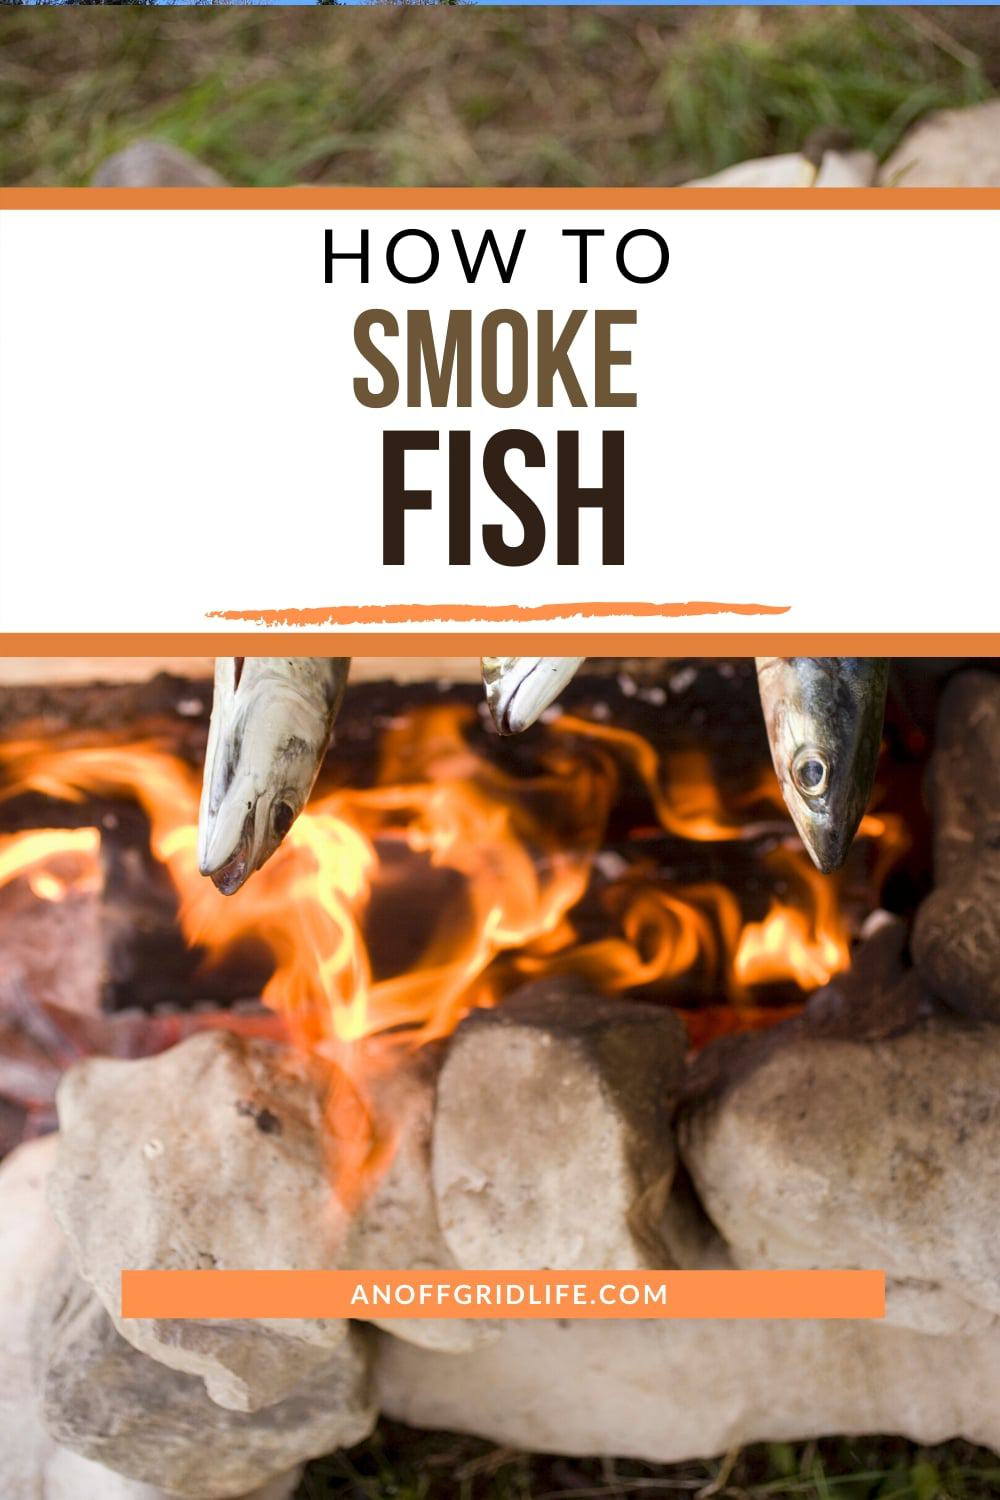 Fish smoking over a campfire